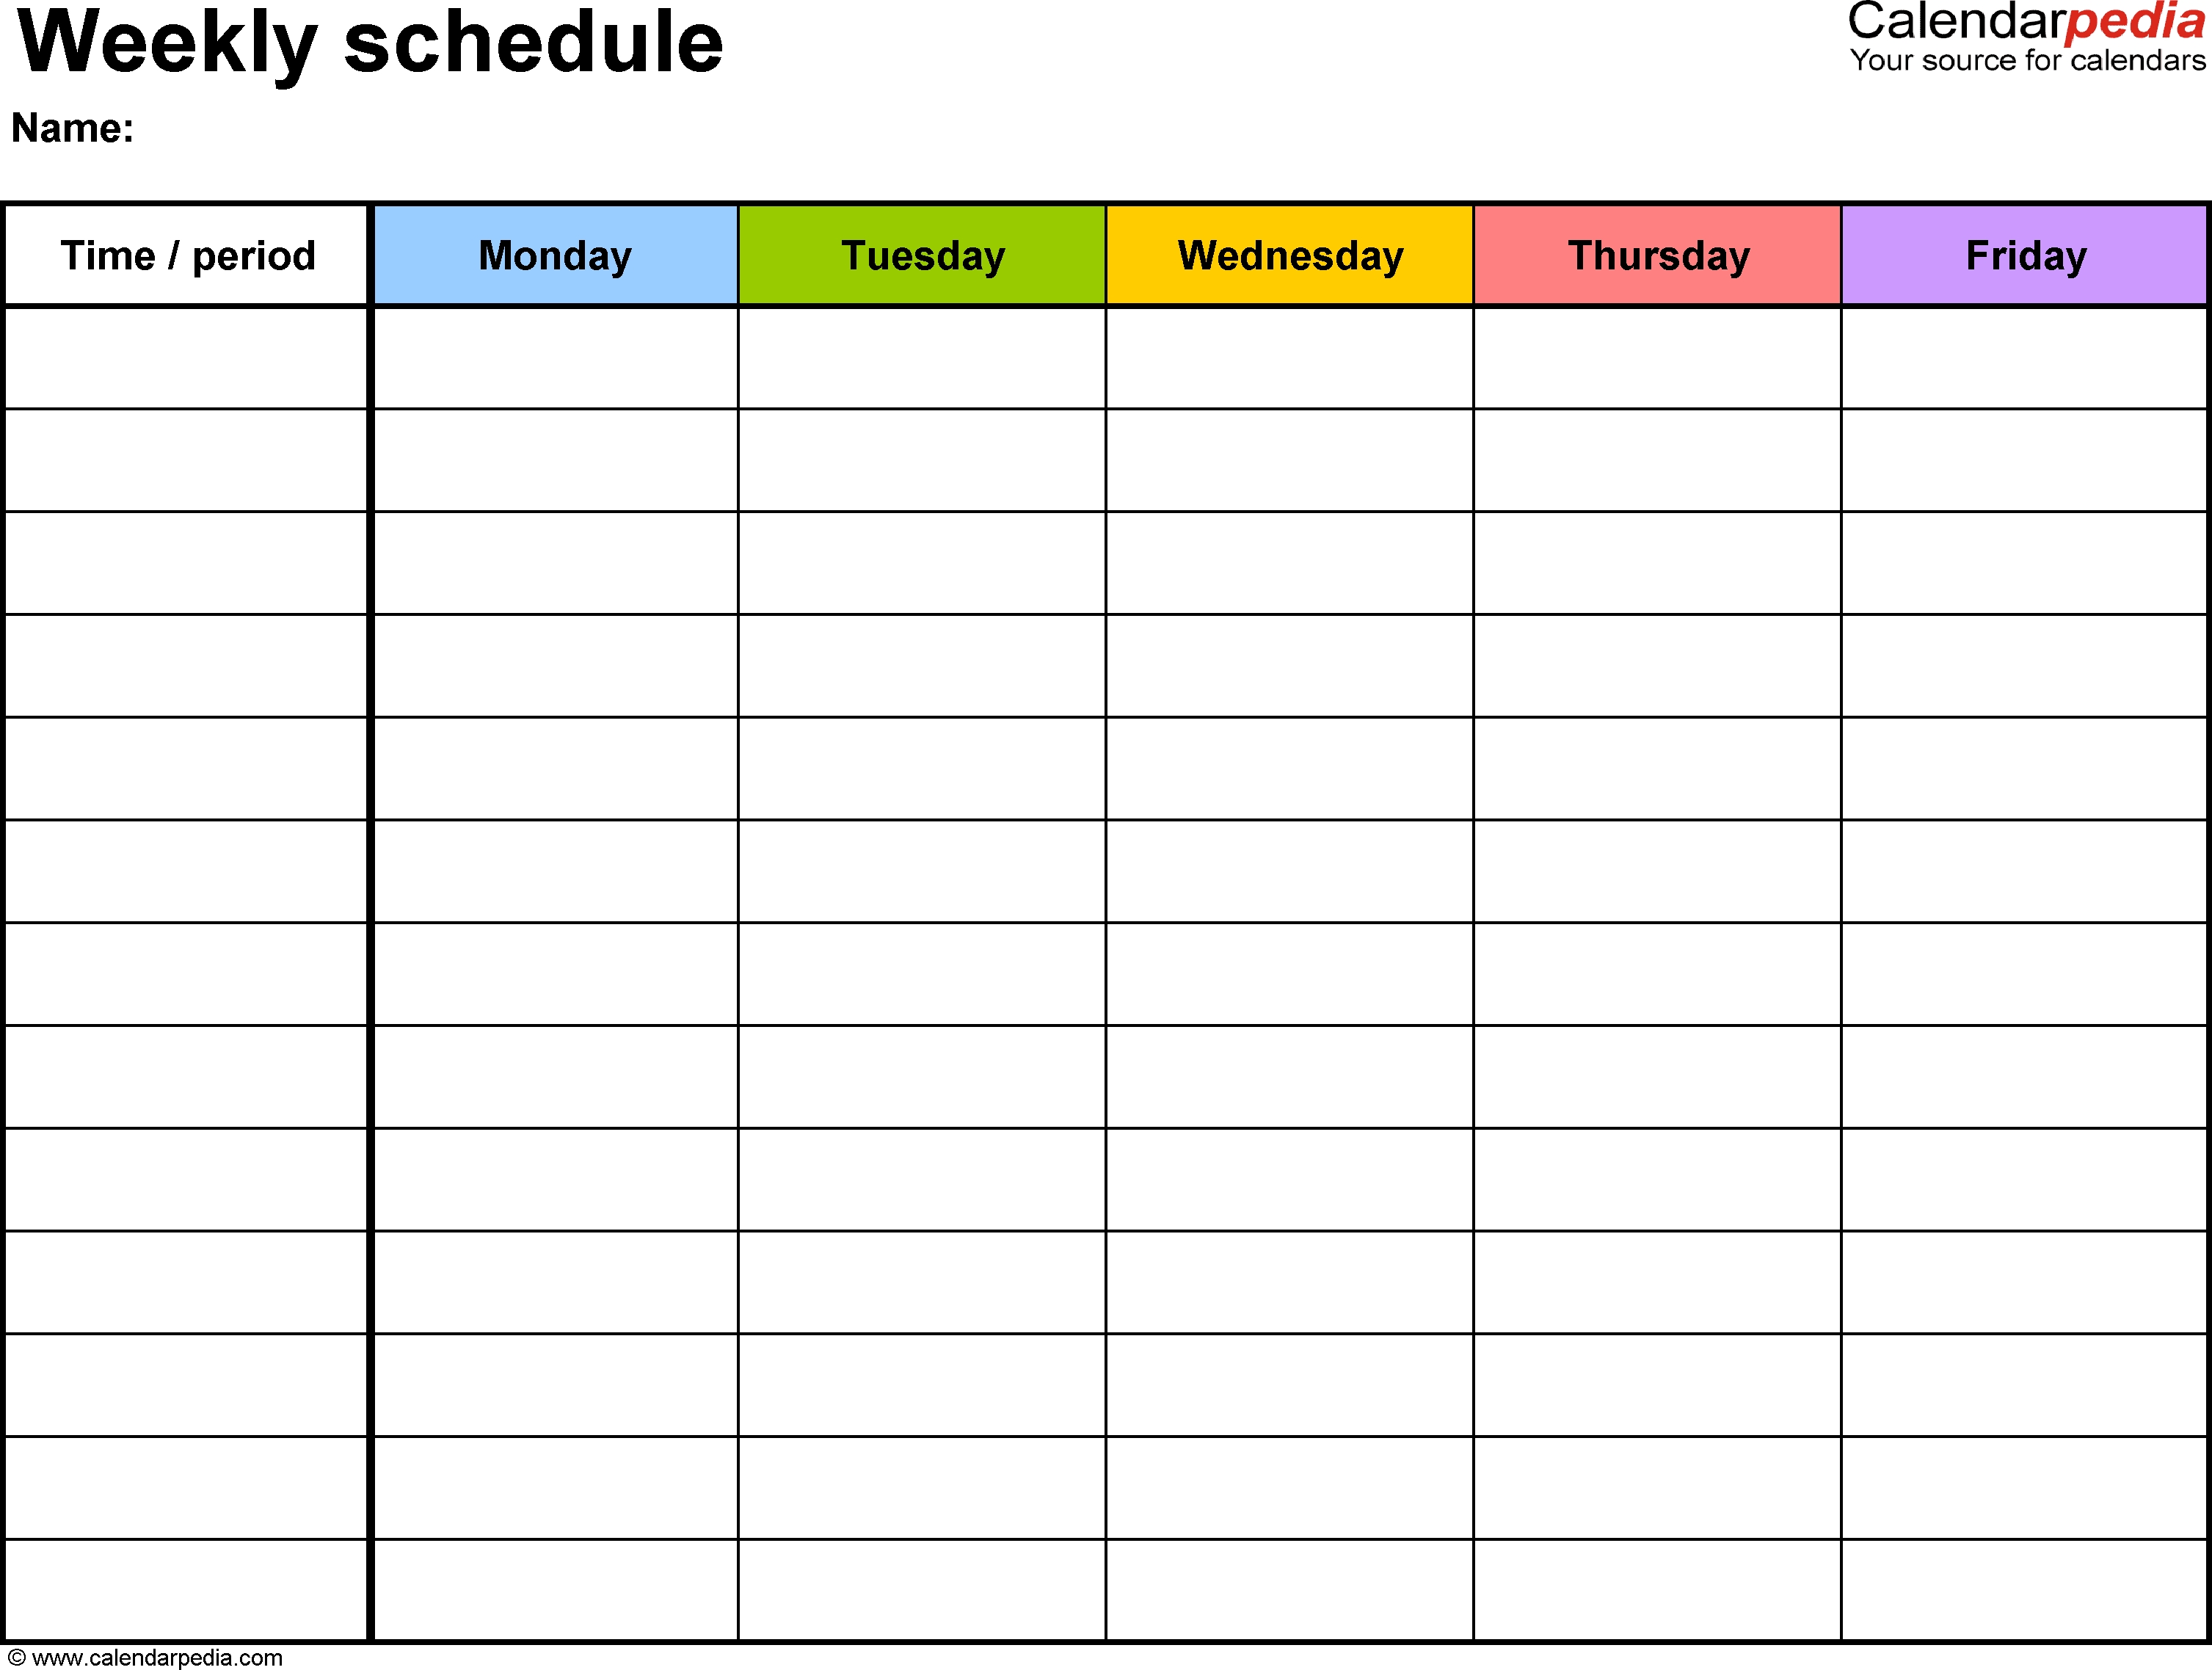 Weekly Schedule Template For Word Version 1: Landscape, 1 Remarkable To Fill In Blank Calendar Monday Friday